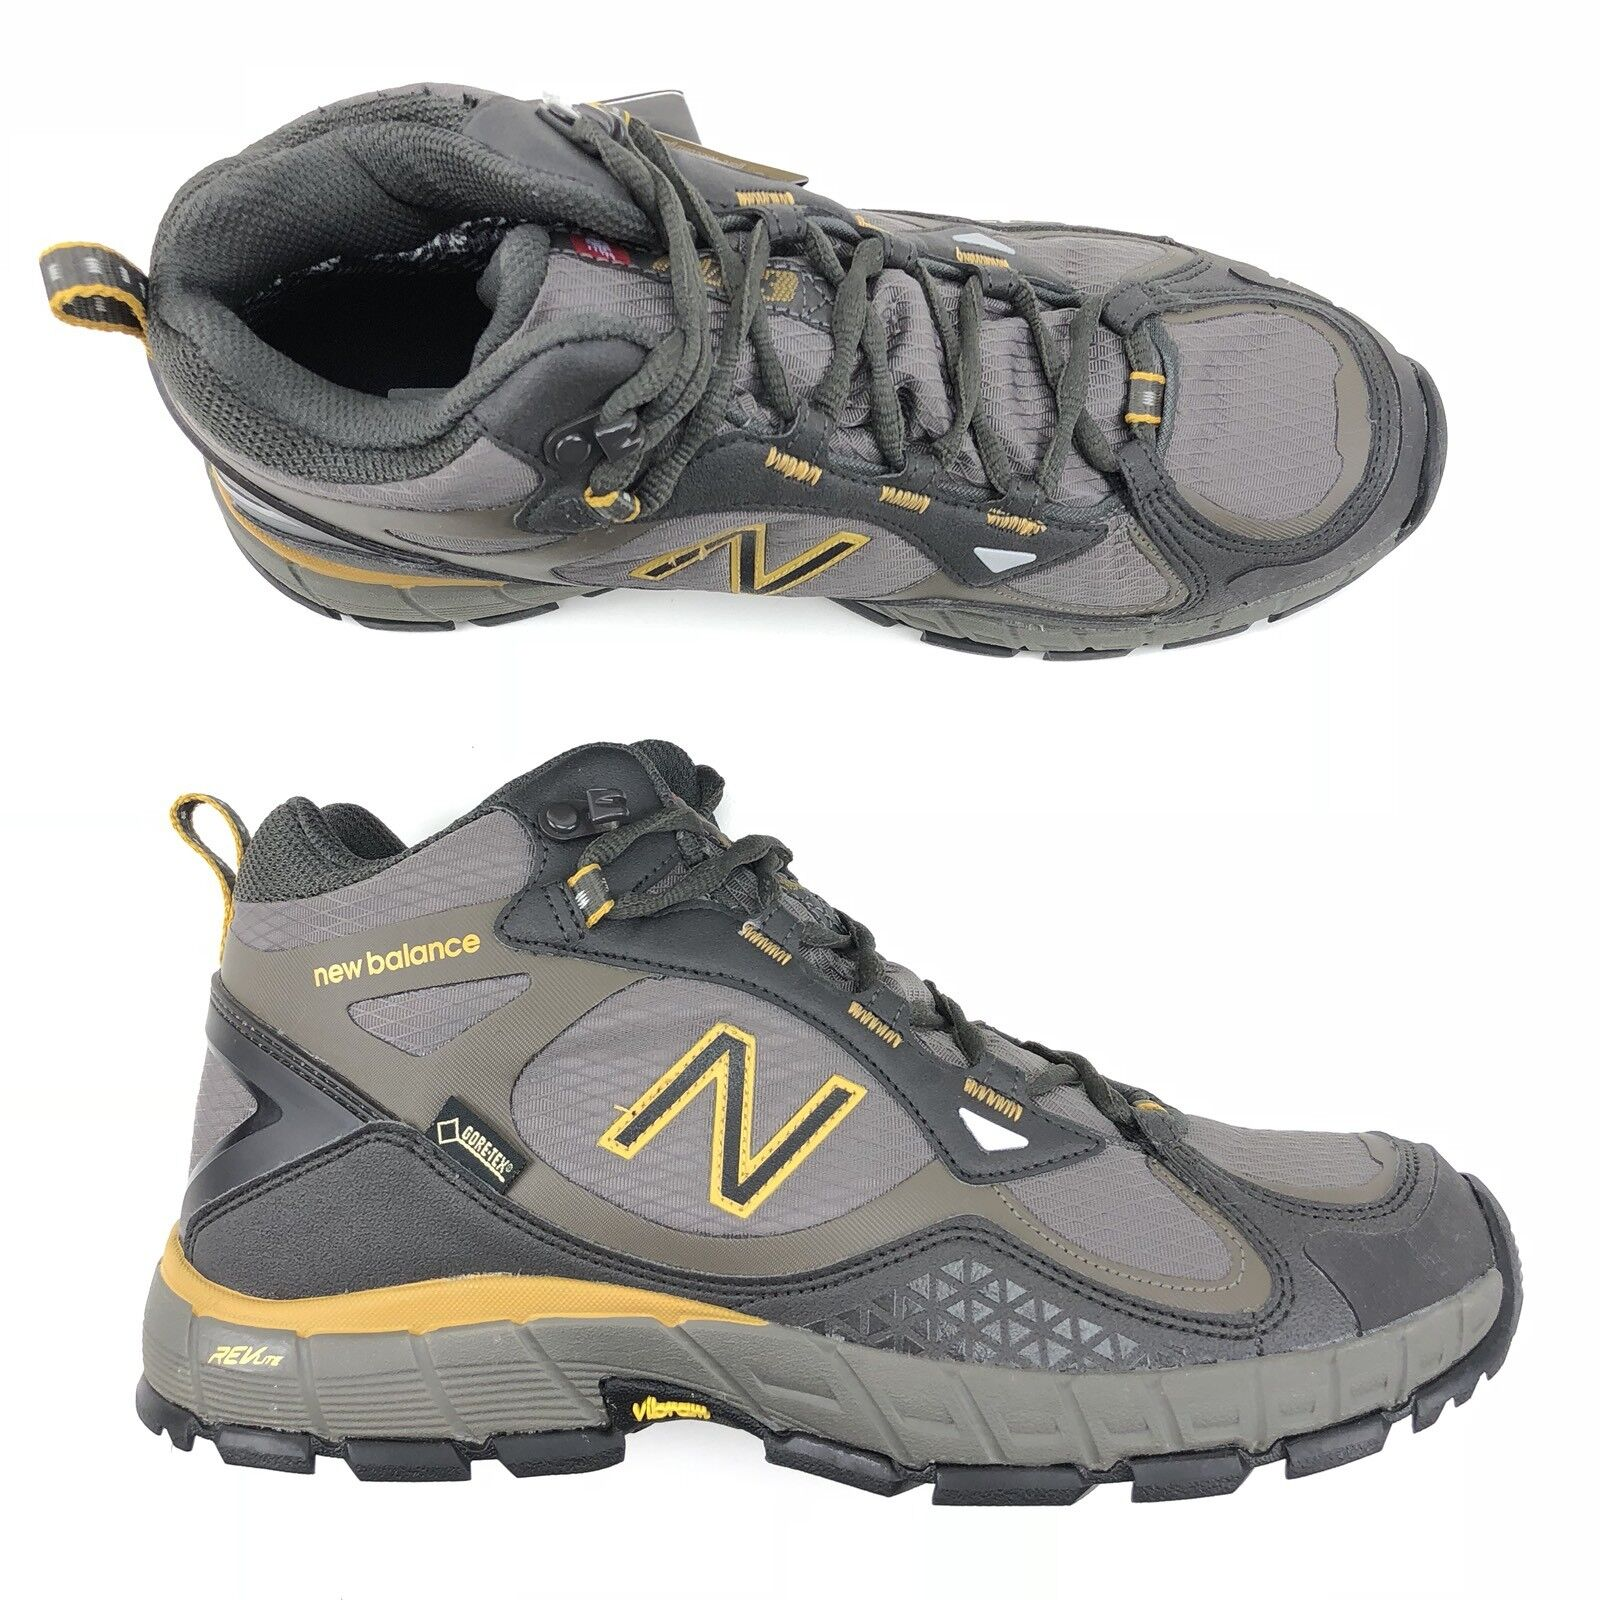 New Balance 703 Hiking Boot GoreTex Vibram Walking Shoe MO703HGT Men Size 10.5 D